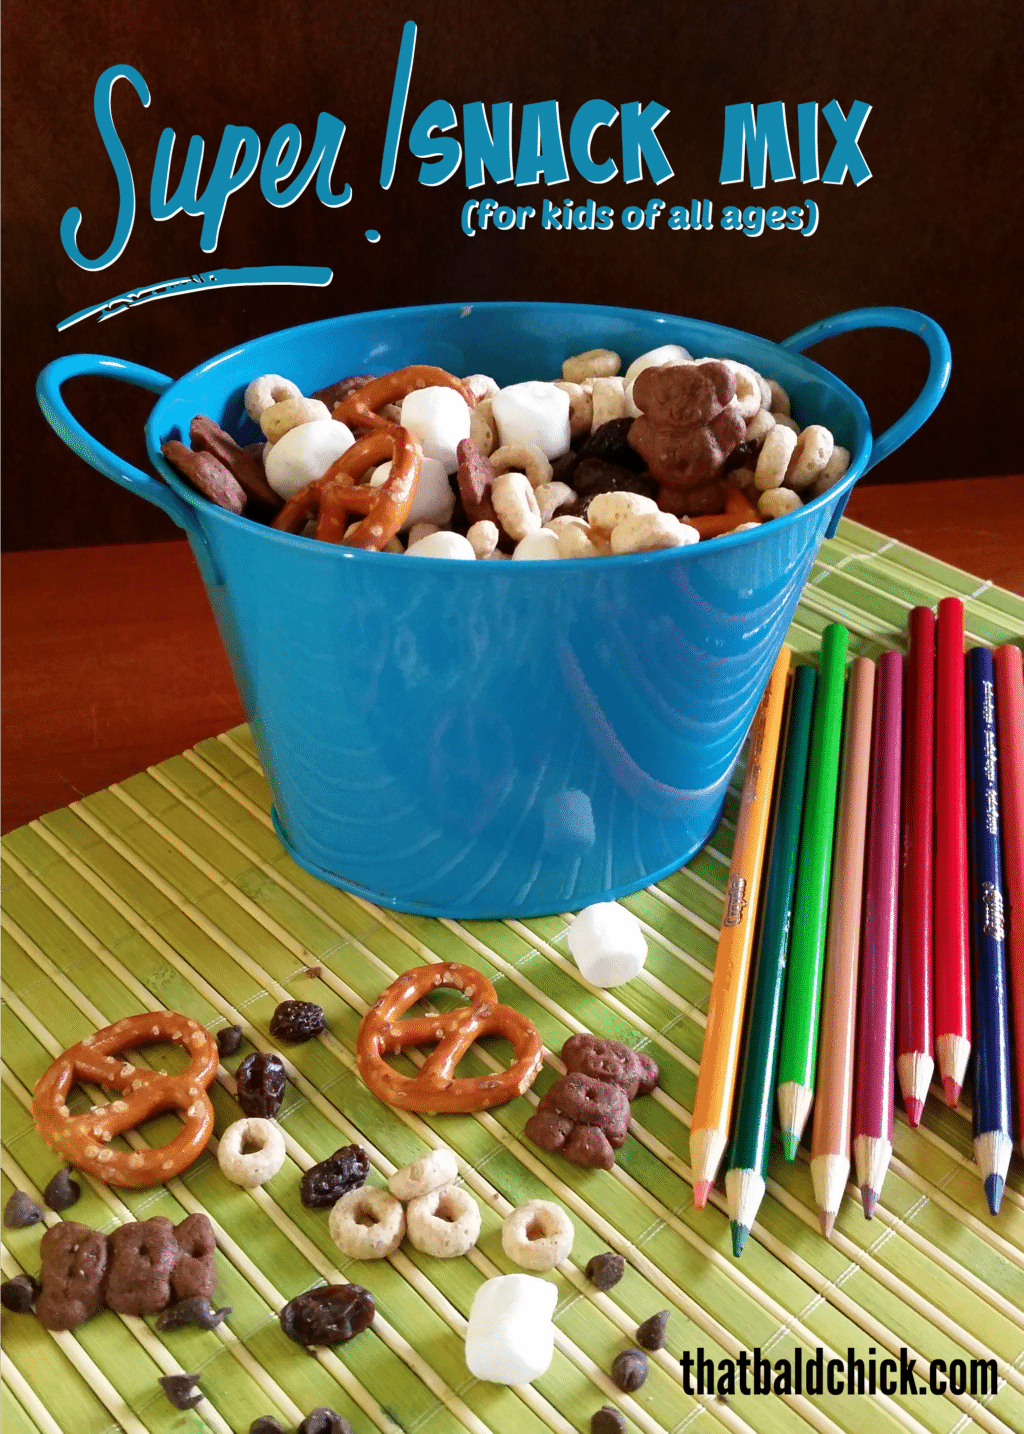 Super Snack Mix for Kids of All Ages @thatbaldchick